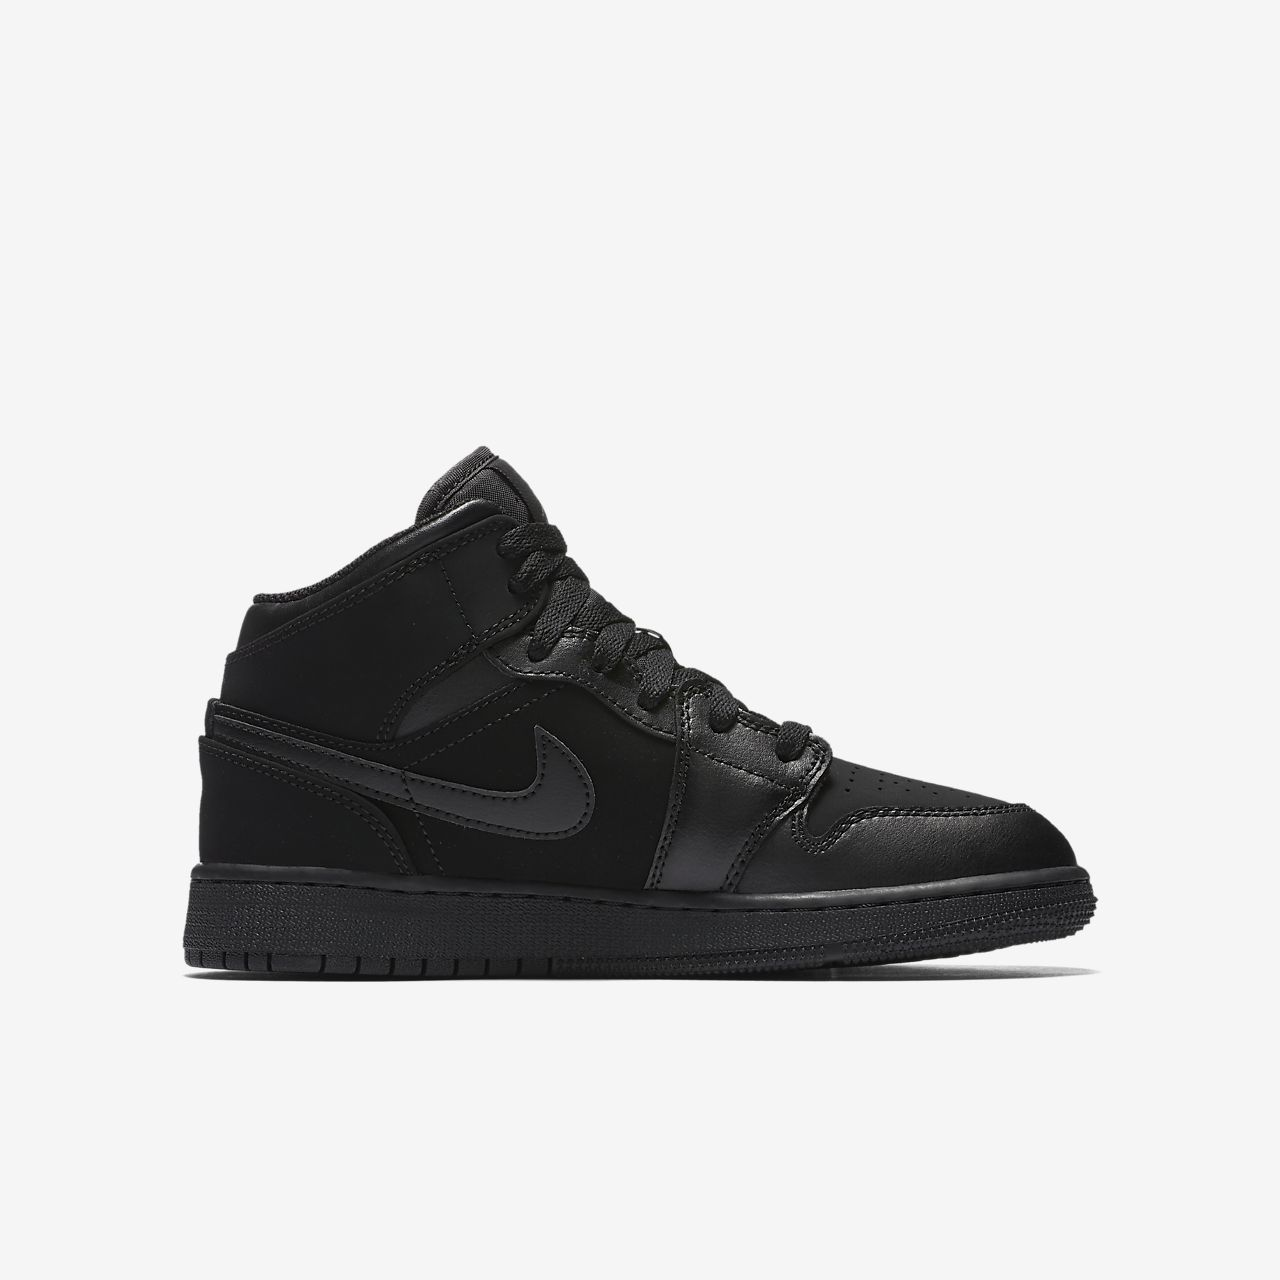 nike air jordan mid 1 nz